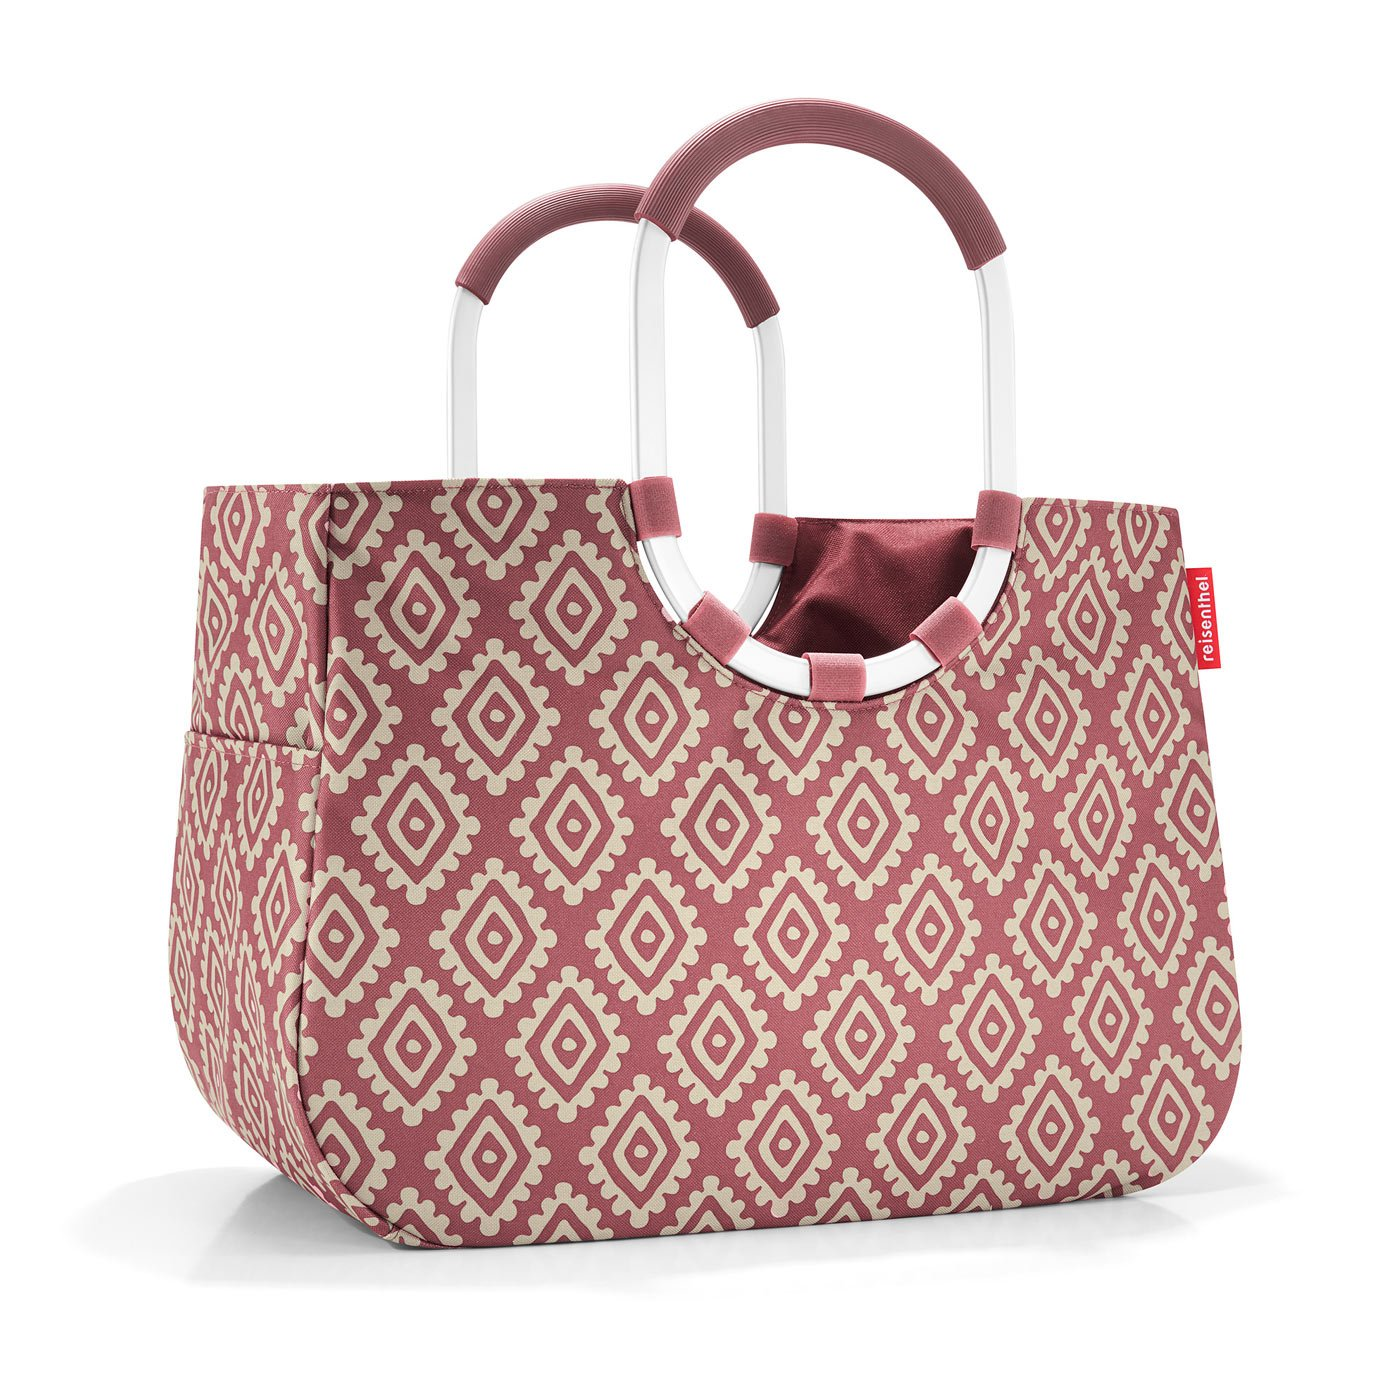 Diamonds Mocha 25 liters 46 cm Reisenthel loopshopper L Canvas /& Beach Tote Bag Brown